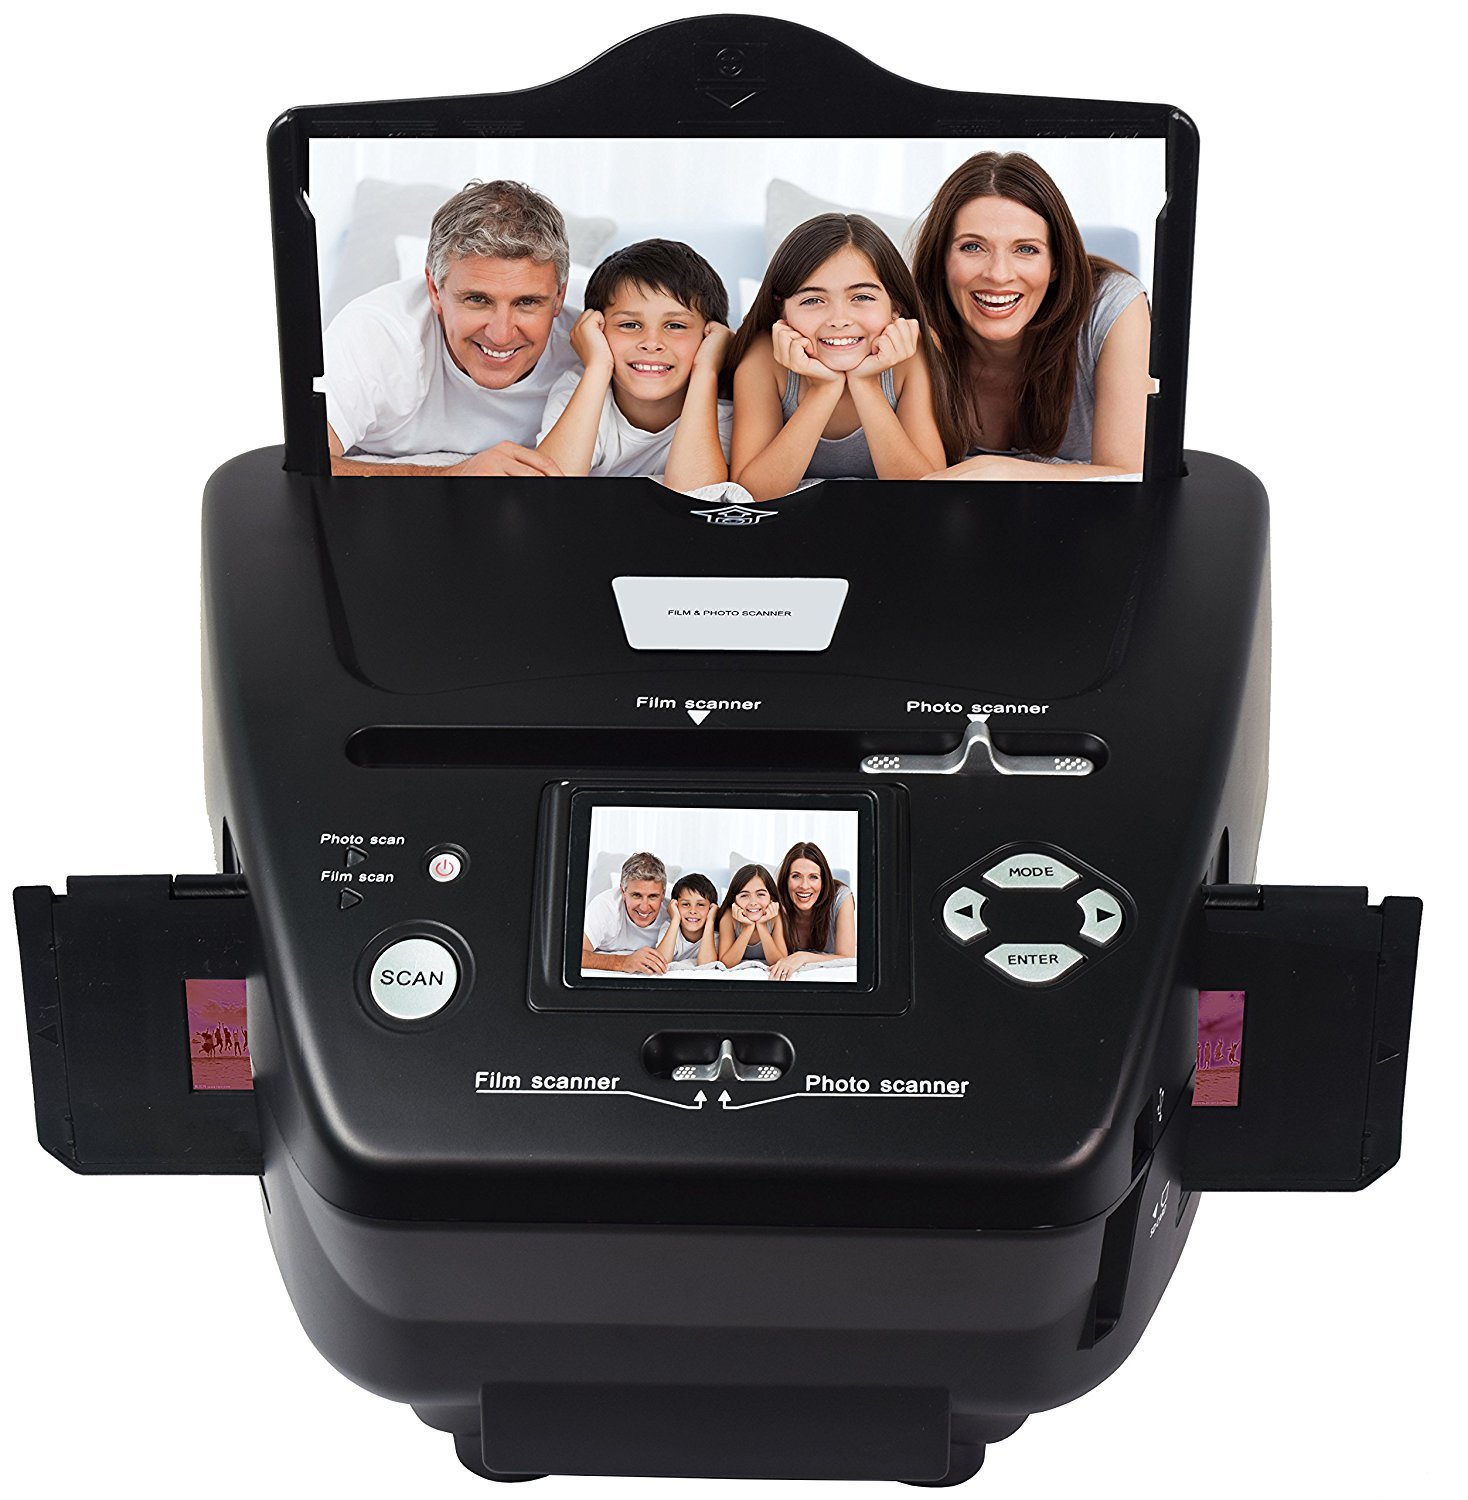 DIGITNOW 35mm /135slides&Negatives Film Scanner Photo, Name Card, Slides and Negatives to Digital Converter for Saving Films to Digital Files in 4GB SD card(Included) with Photo Editing Software